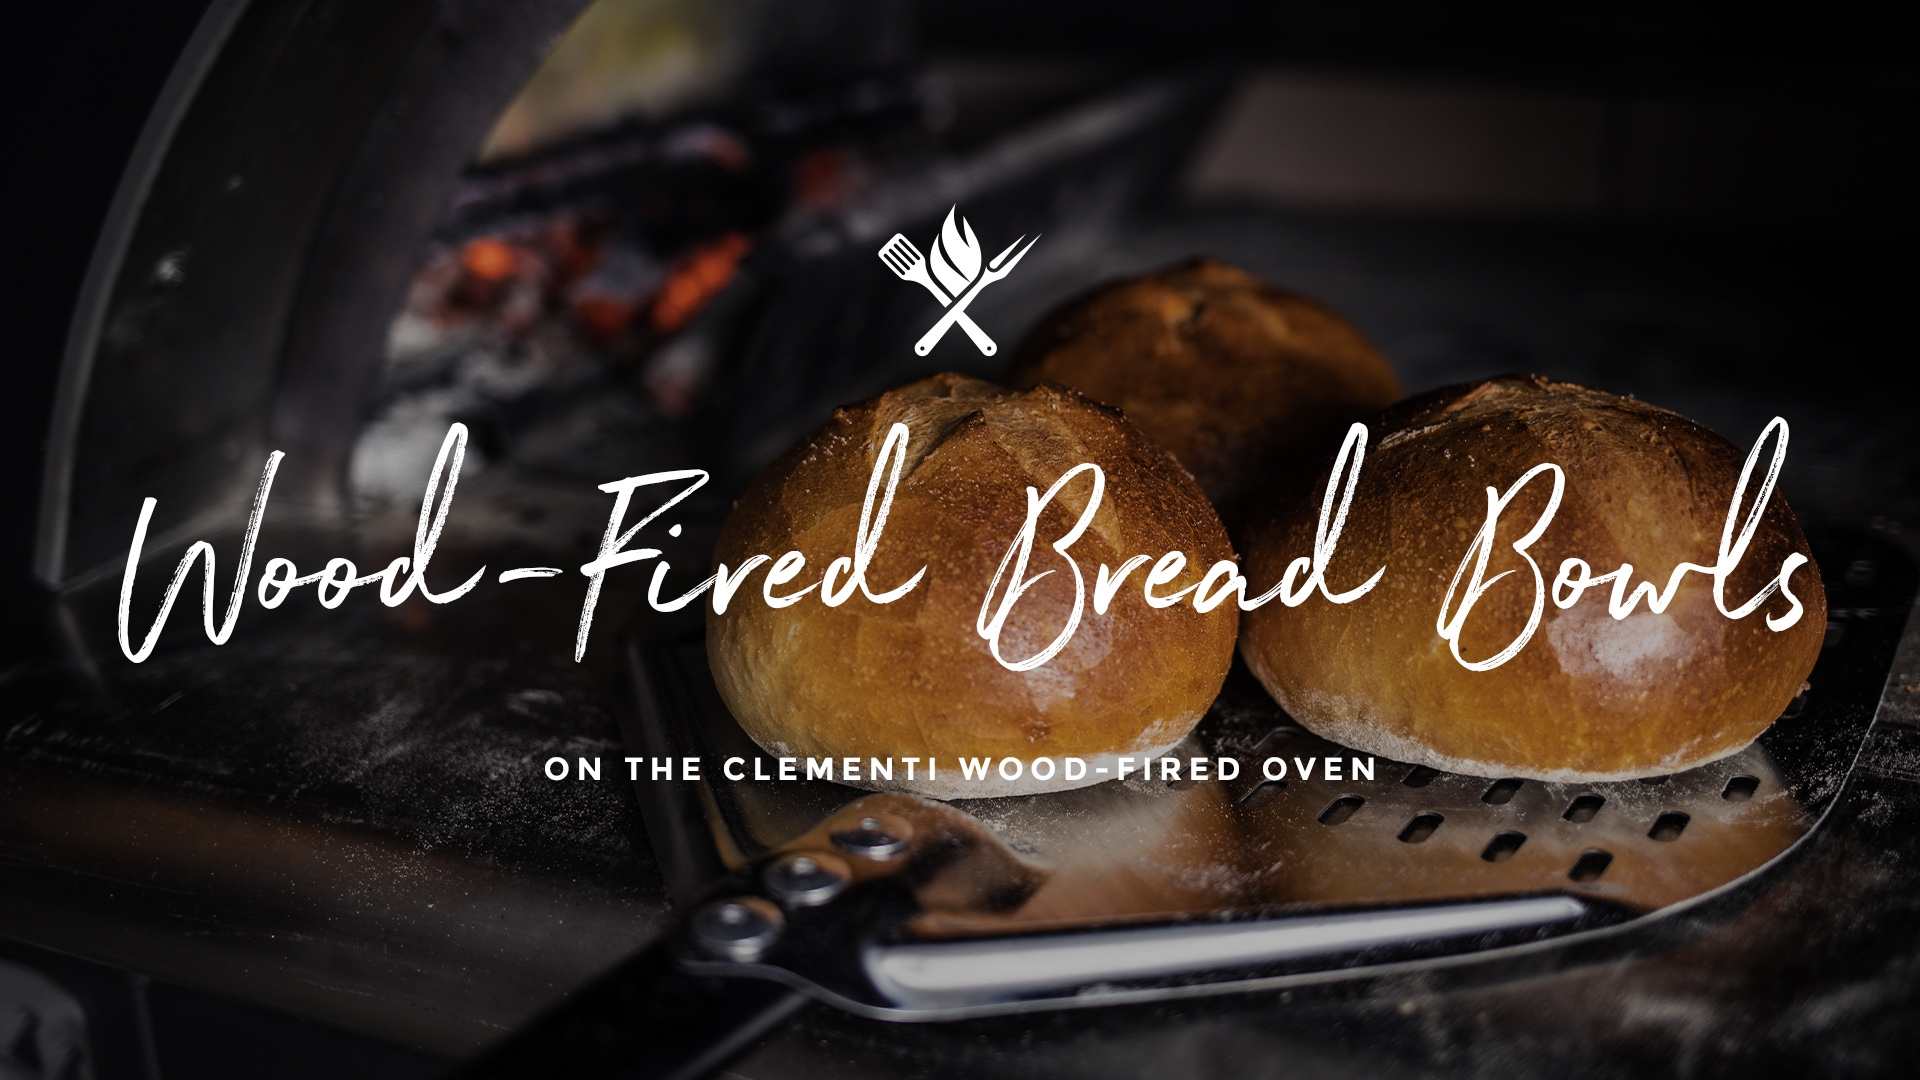 How to make Wood-Fired Bread Bowls